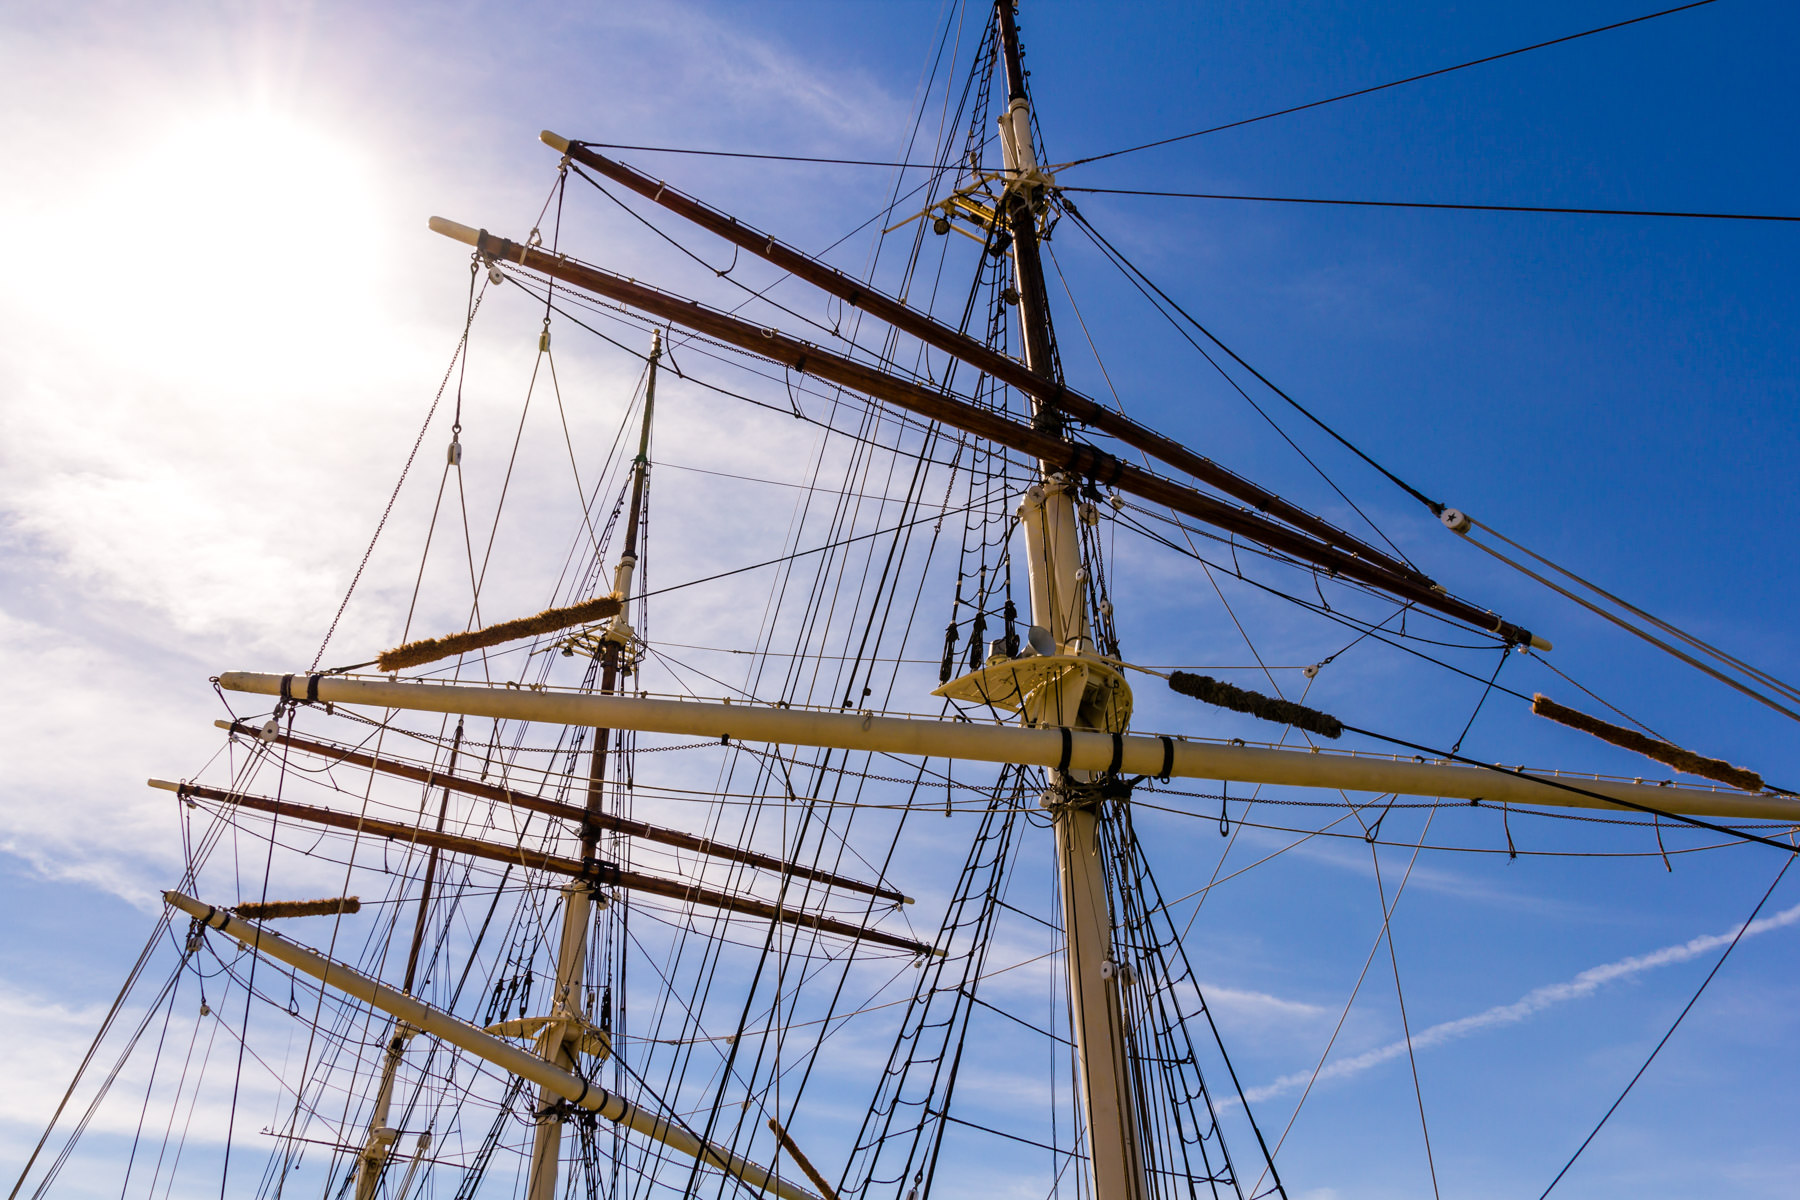 Detail of the Elissa, a tall ship launched in 1877 and now ported in Galveston, Texas.